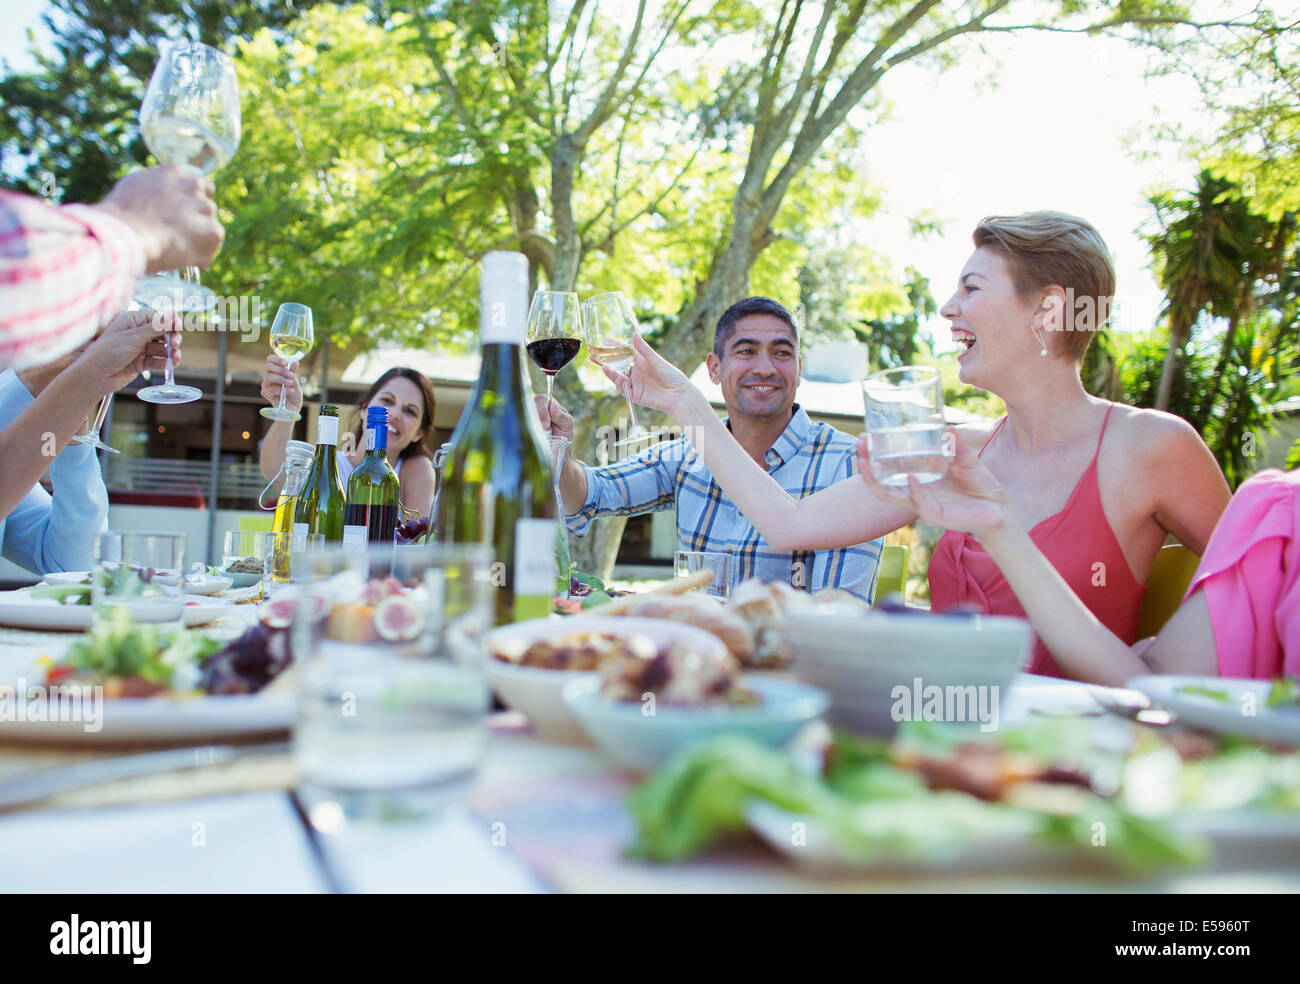 Friends toasting each other at party - Stock Image